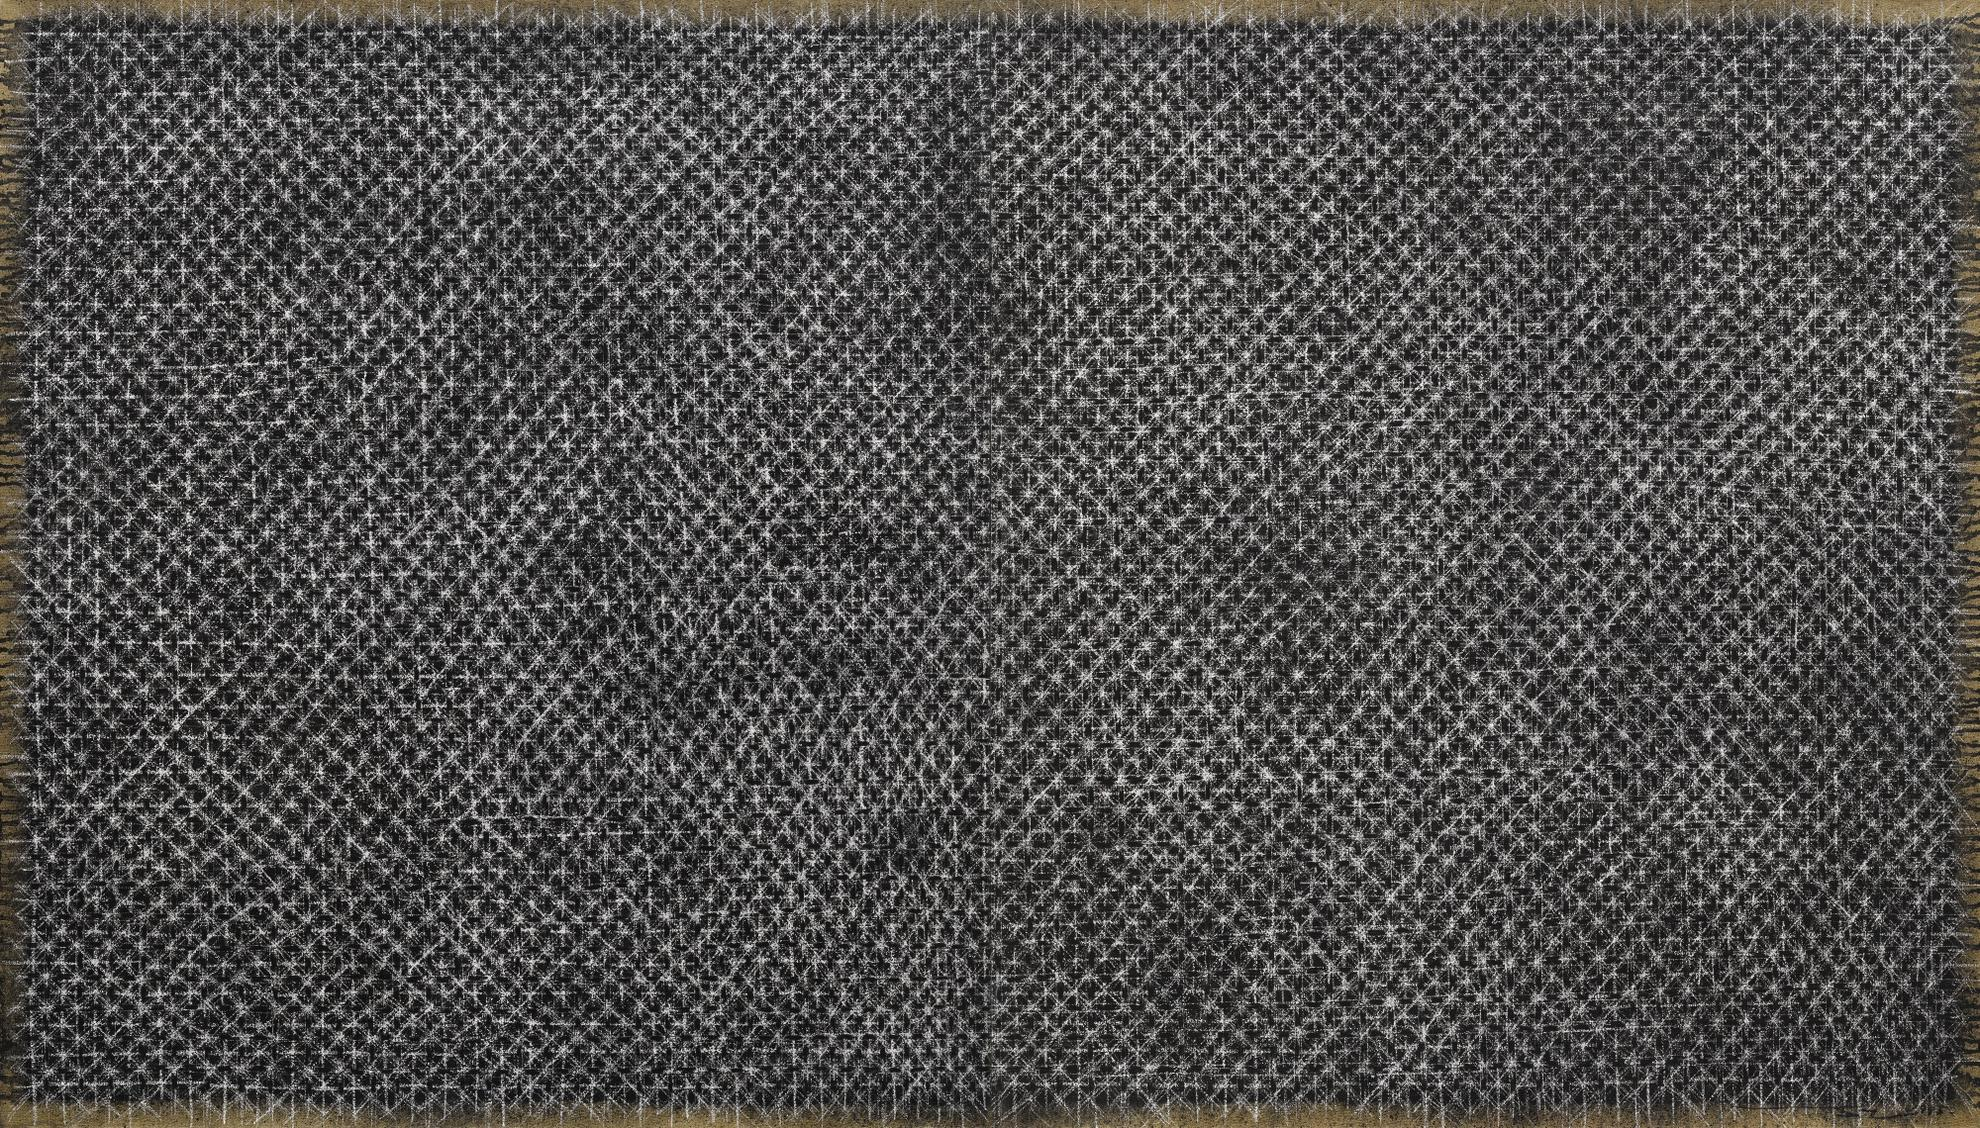 Ding Yi-Appearance Of Crosses 95-18 (Diptych)-1995